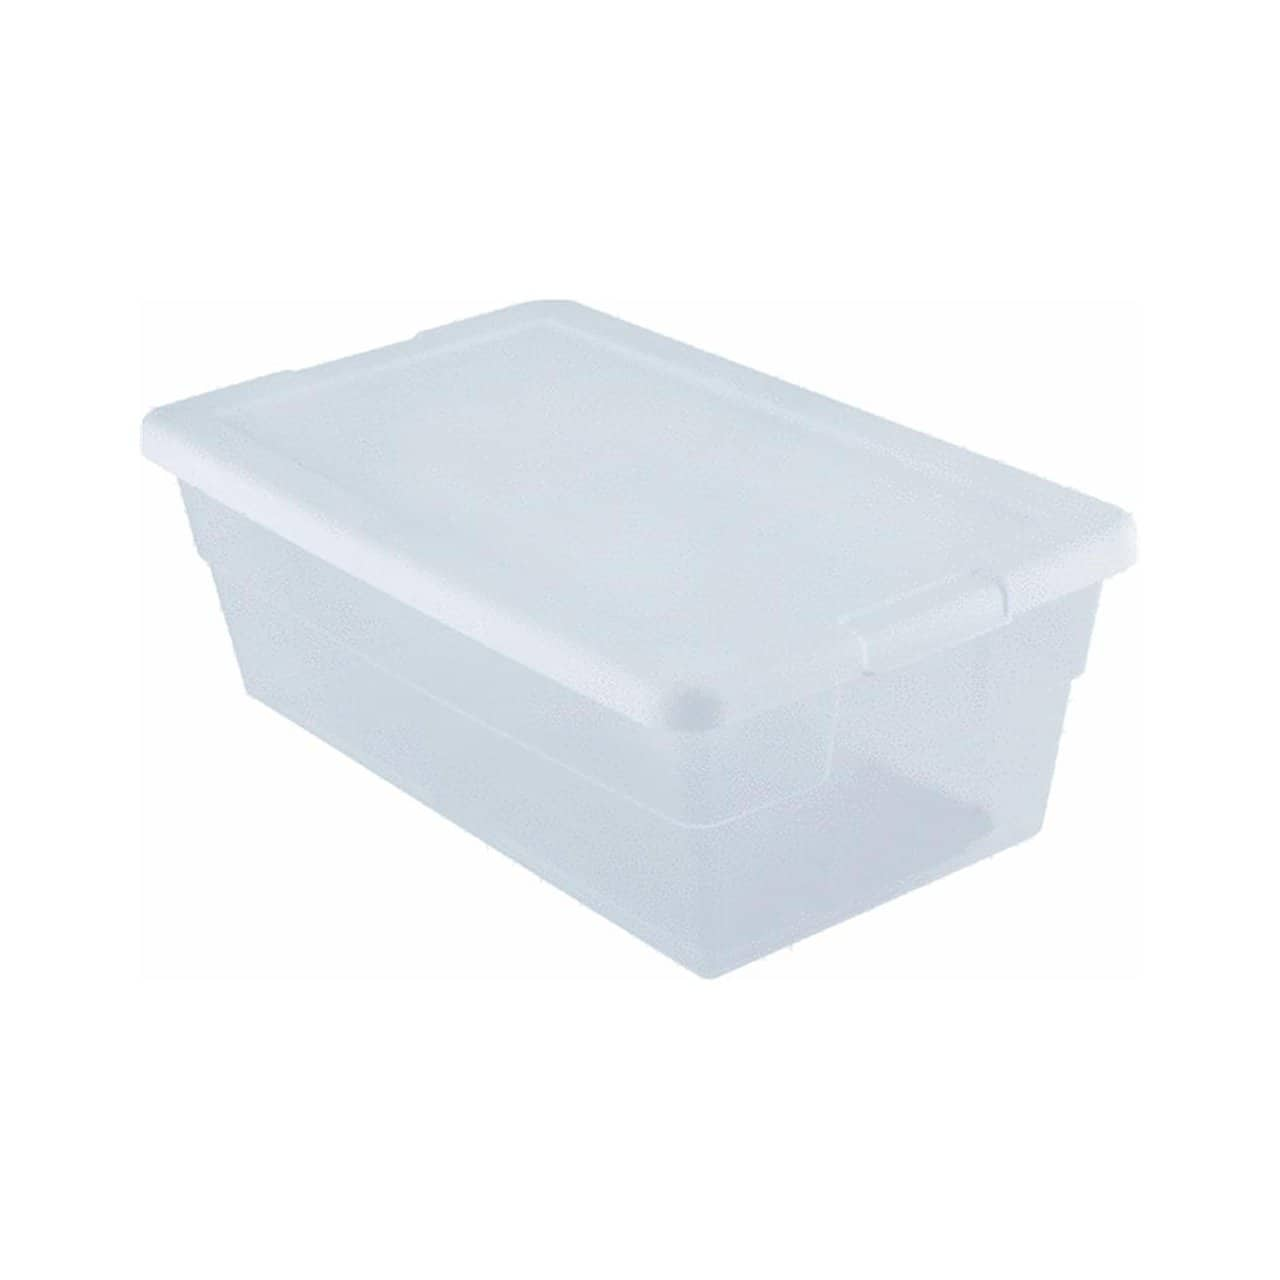 Sterilite 6 Quart Storage Container $0.33 each at Home Depot YMMV B&M